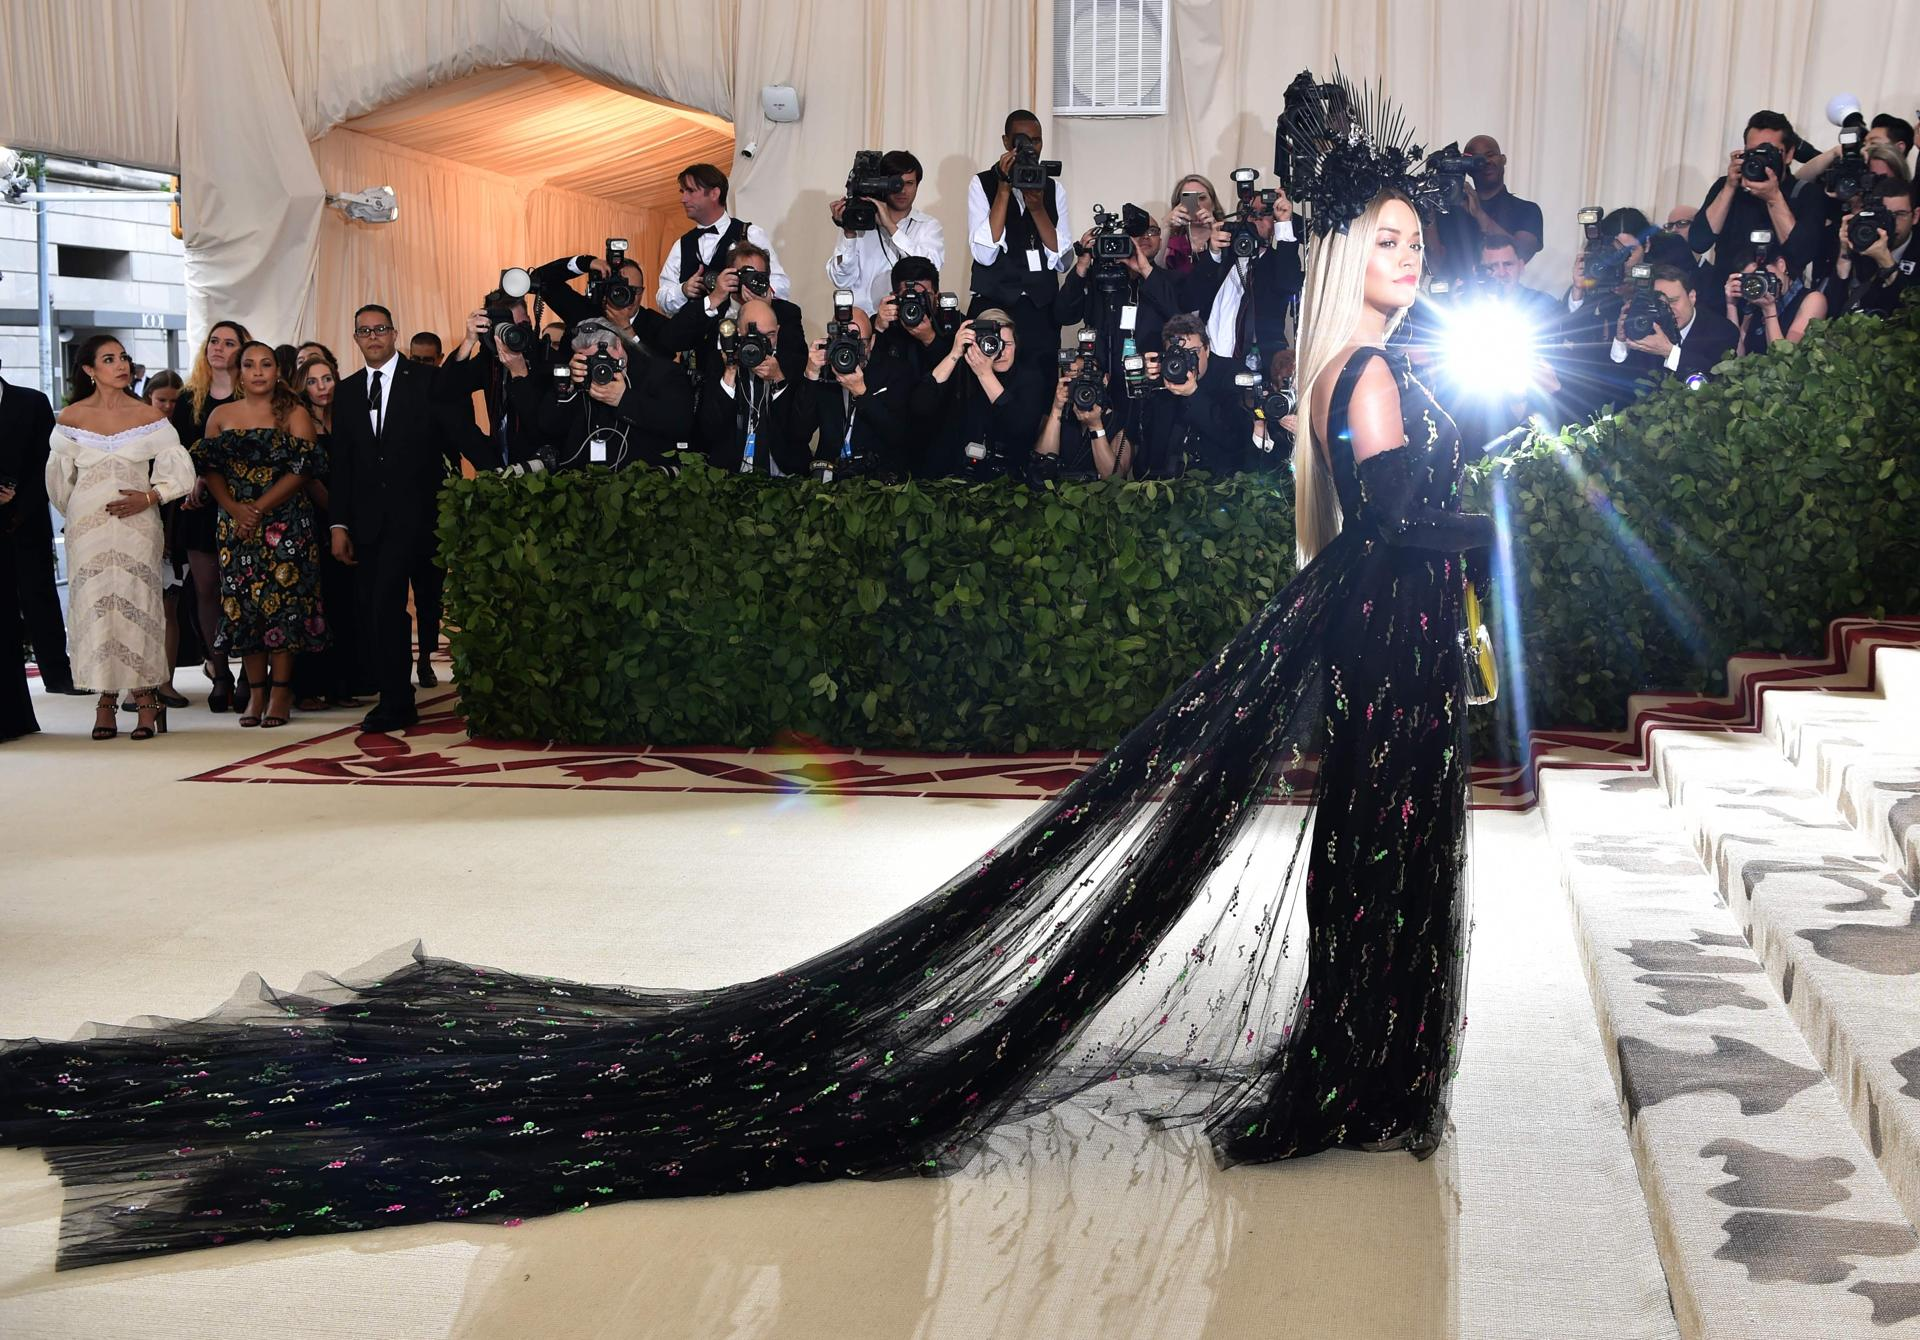 Rita Ora arrives for the 2018 Met Gala on May 7, 2018, at the Metropolitan Museum of Art in New York. The Gala raises money for the Metropolitan Museum of Artââ¬â¢s Costume Institute. The Gala's 2018 theme is ââ¬ÅHeavenly Bodies: Fashion and the Catholic Imagination.ââ¬ï¿½ / AFP PHOTO / Hector RETAMALHECTOR RETAMAL/AFP/Getty Images